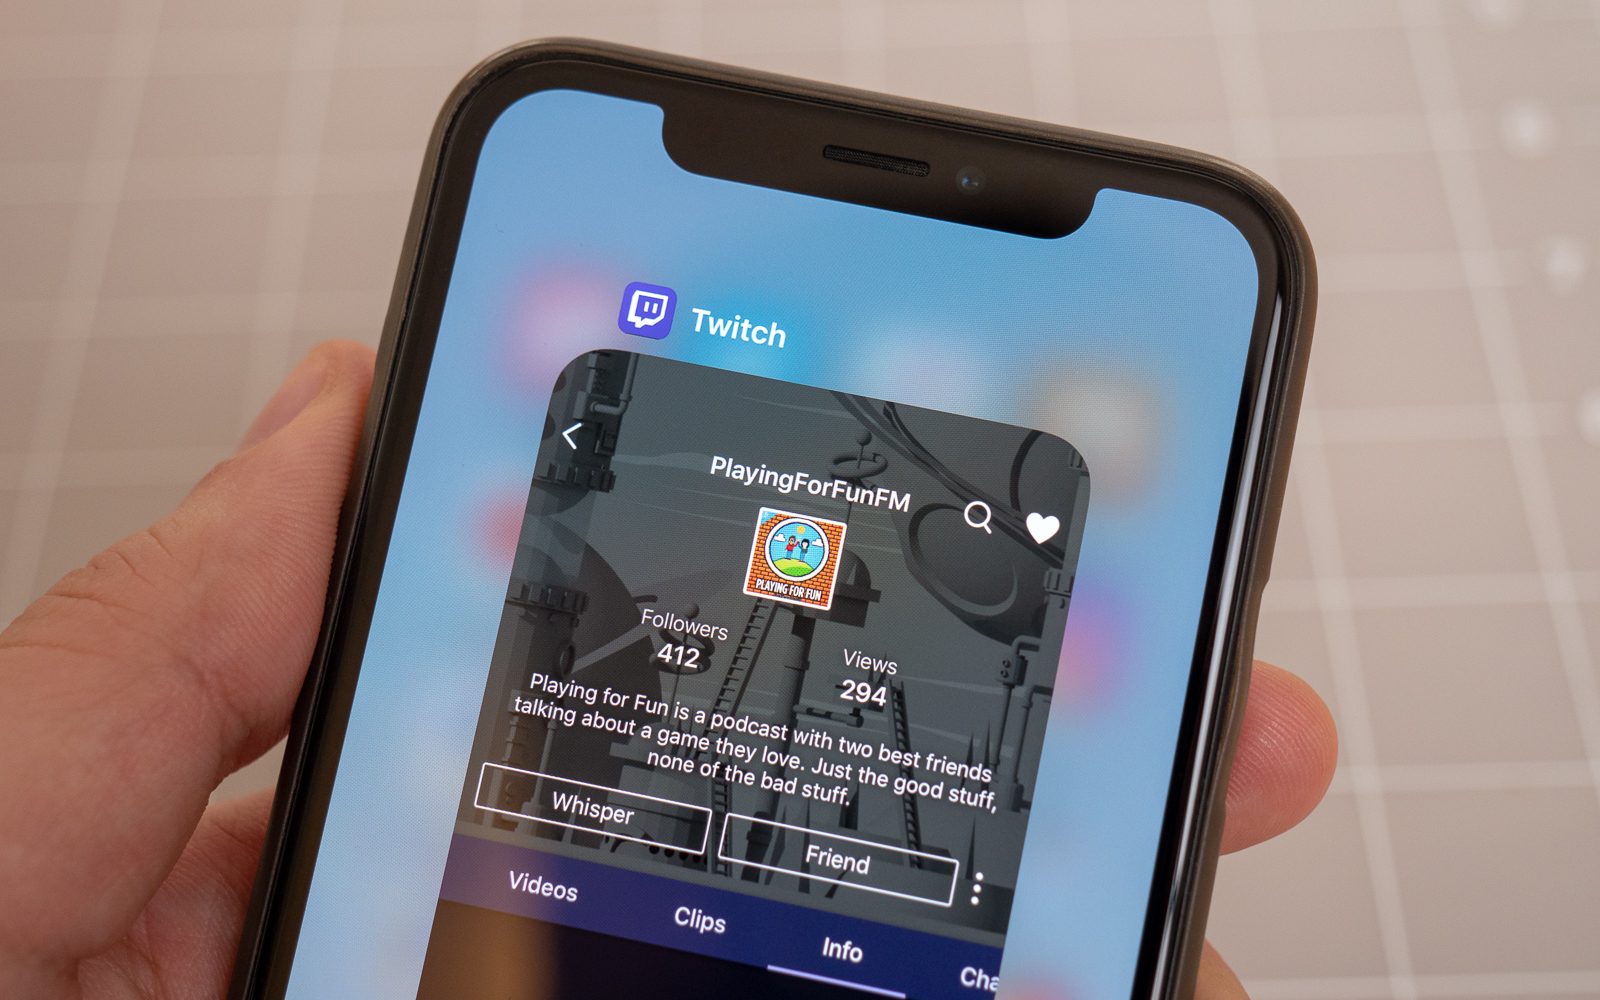 Twitch for iPhone